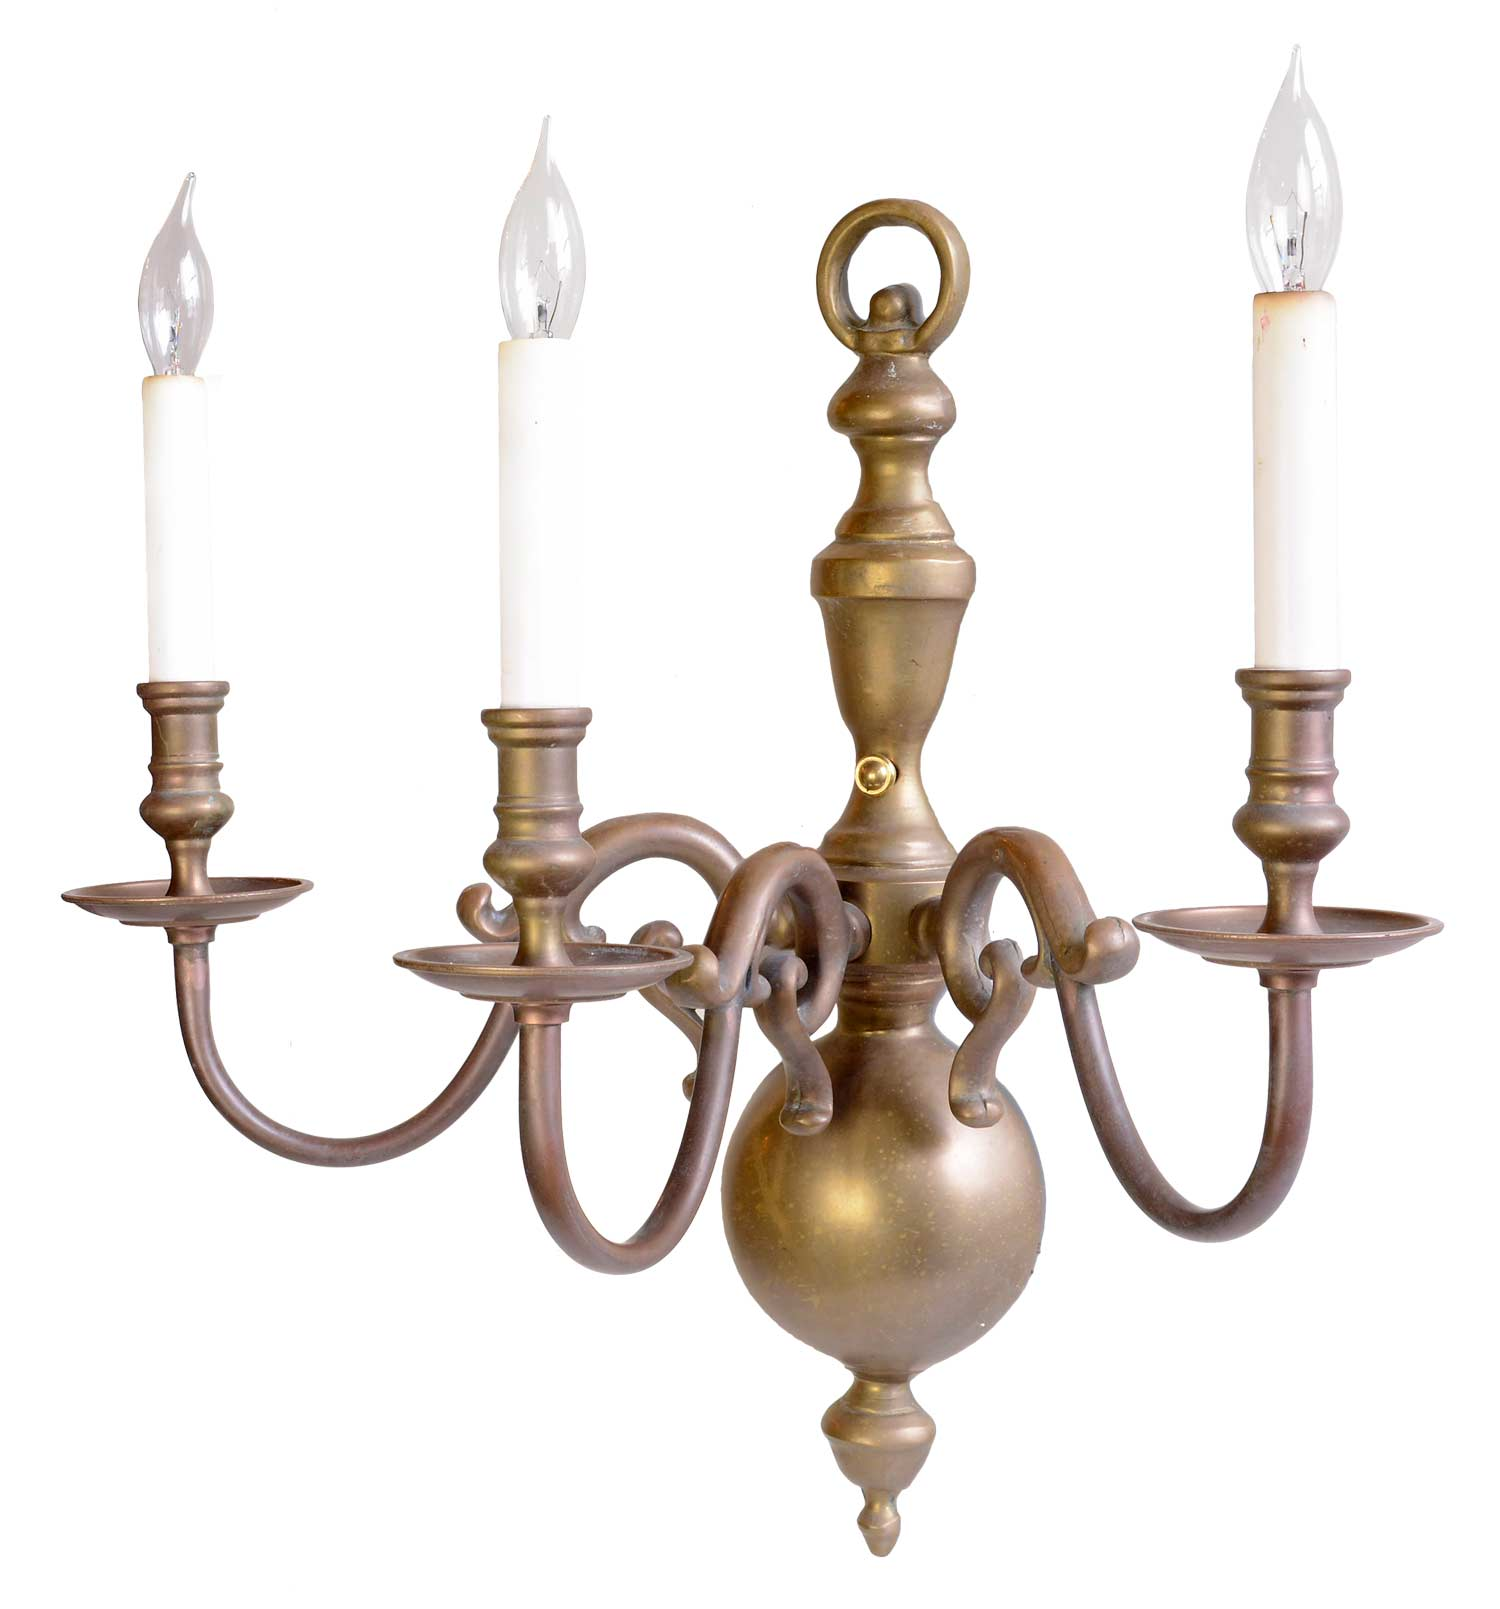 45719-large-colonial-thre-arm-brass-sconce-angle.jpg